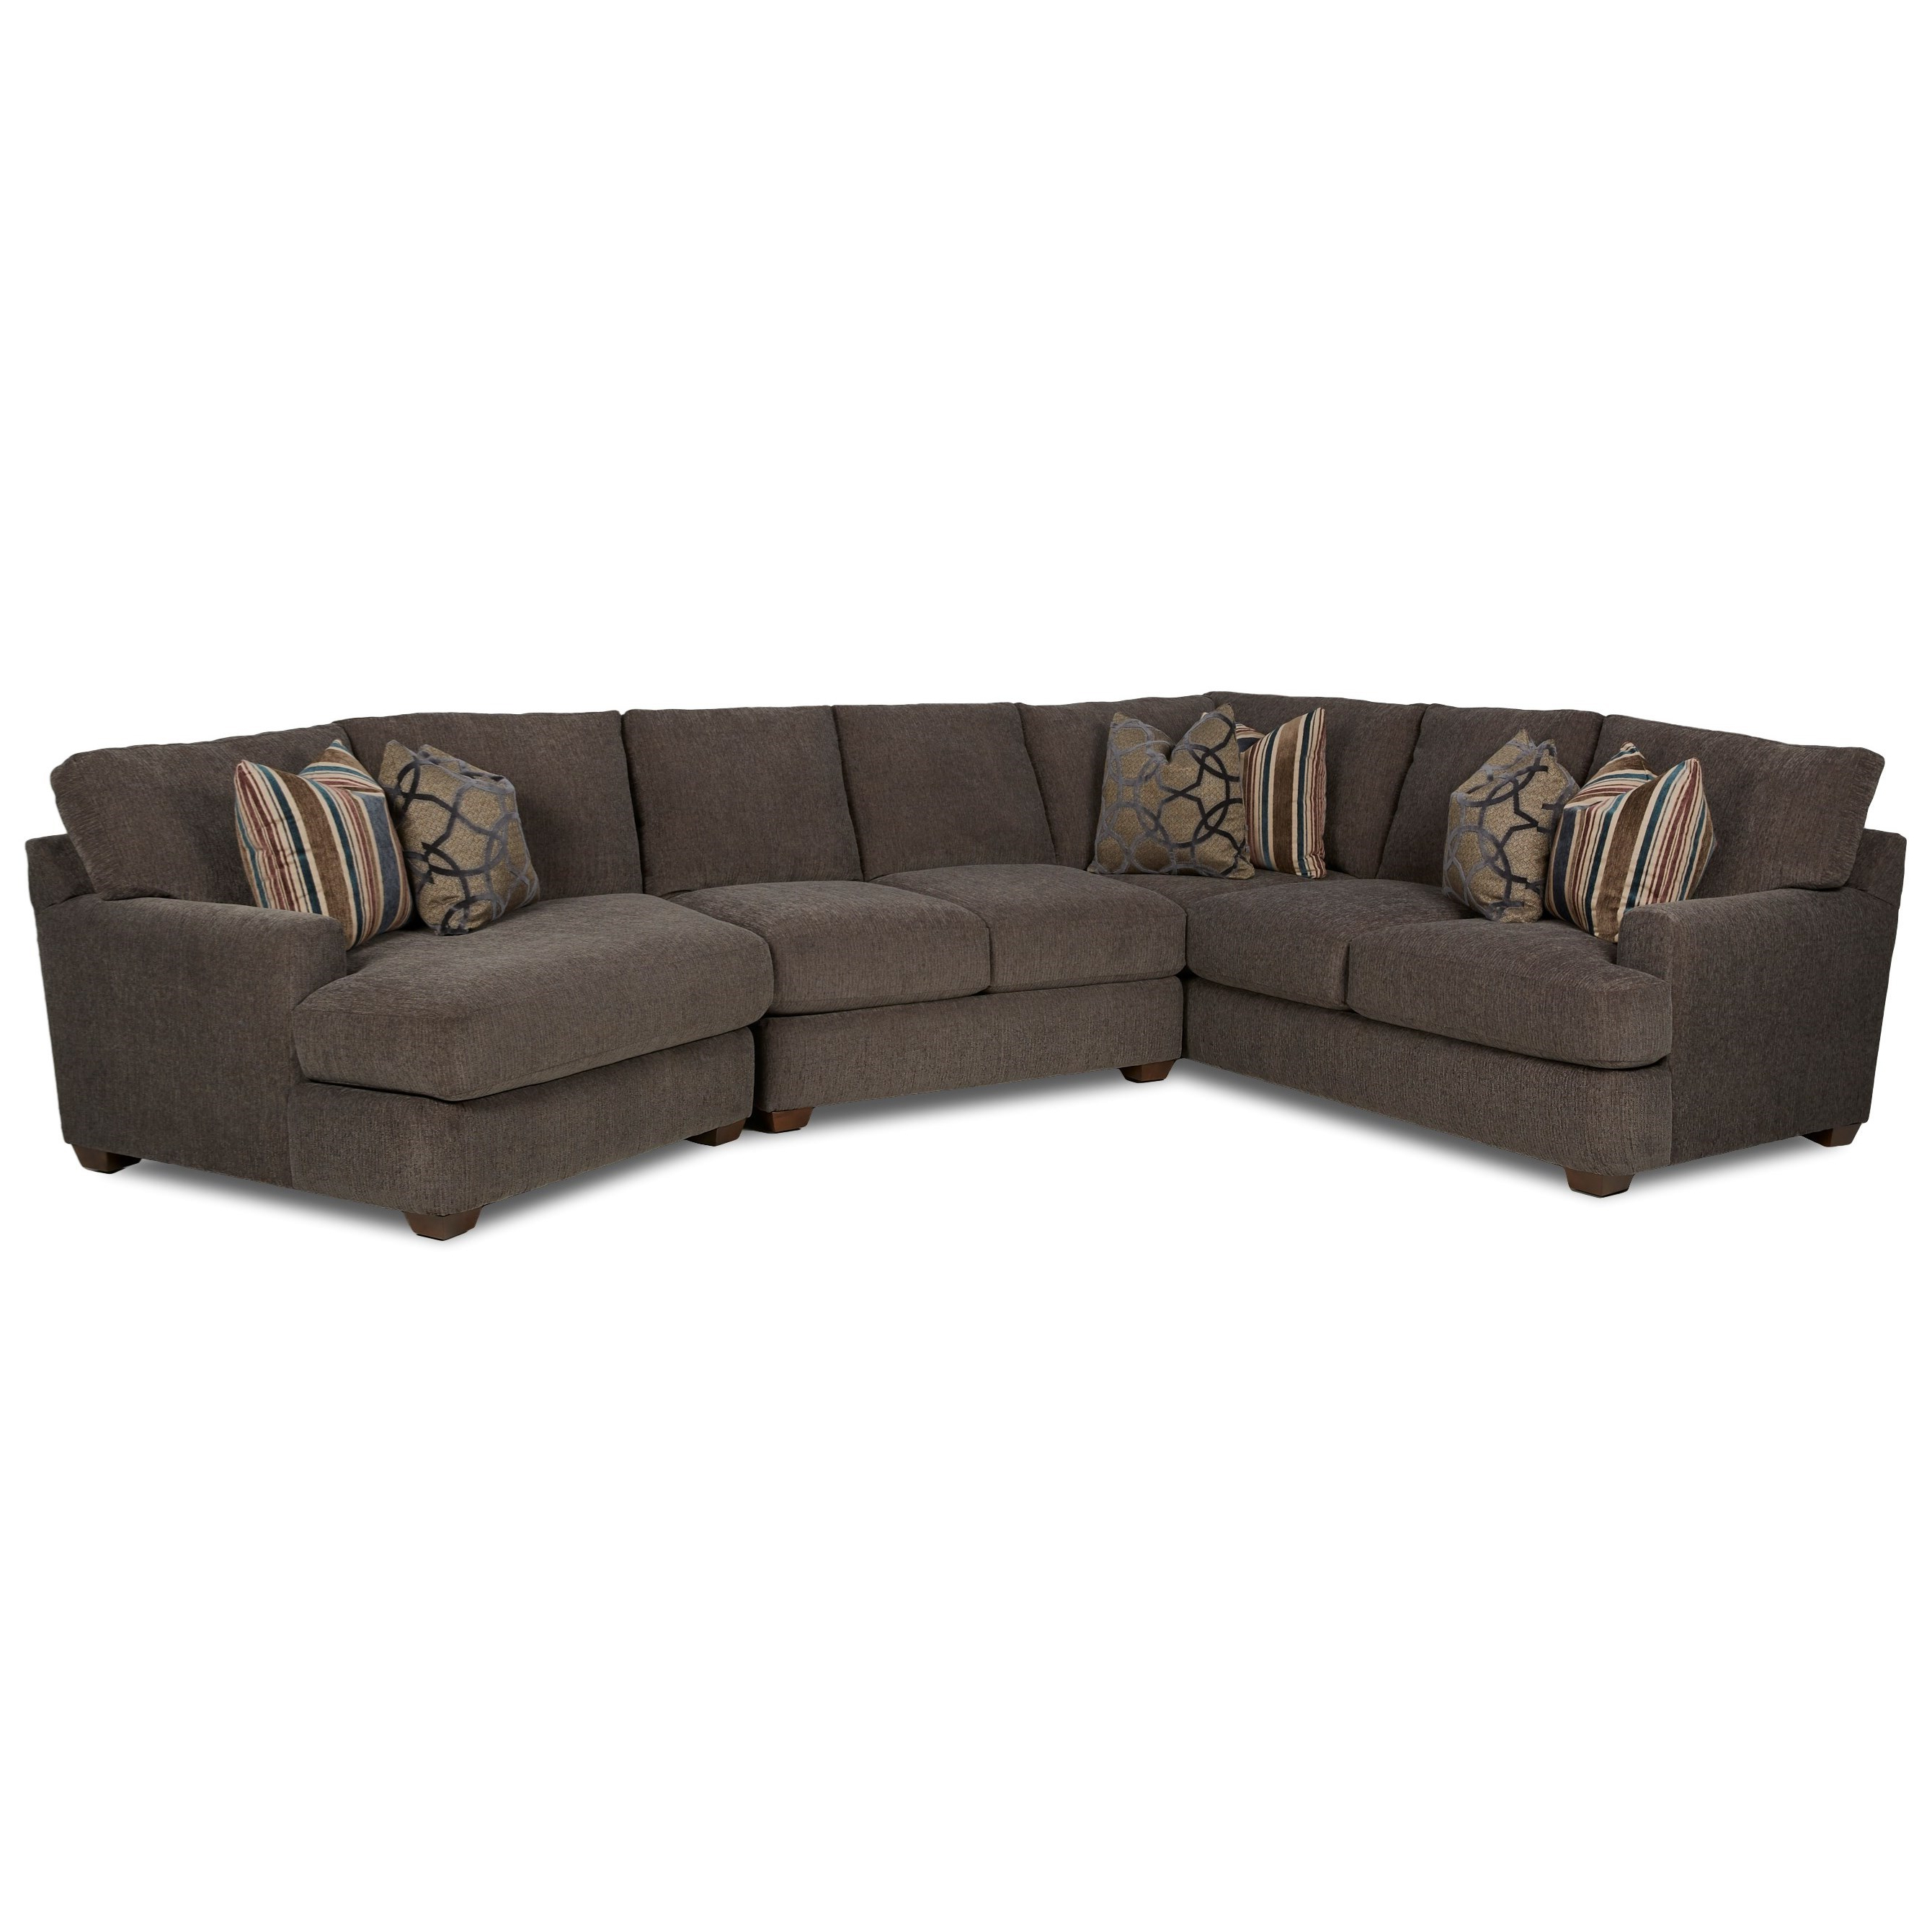 Klaussner Haynes Three Piece Sectional Sofa With Raf Cuddler (View 5 of 20)